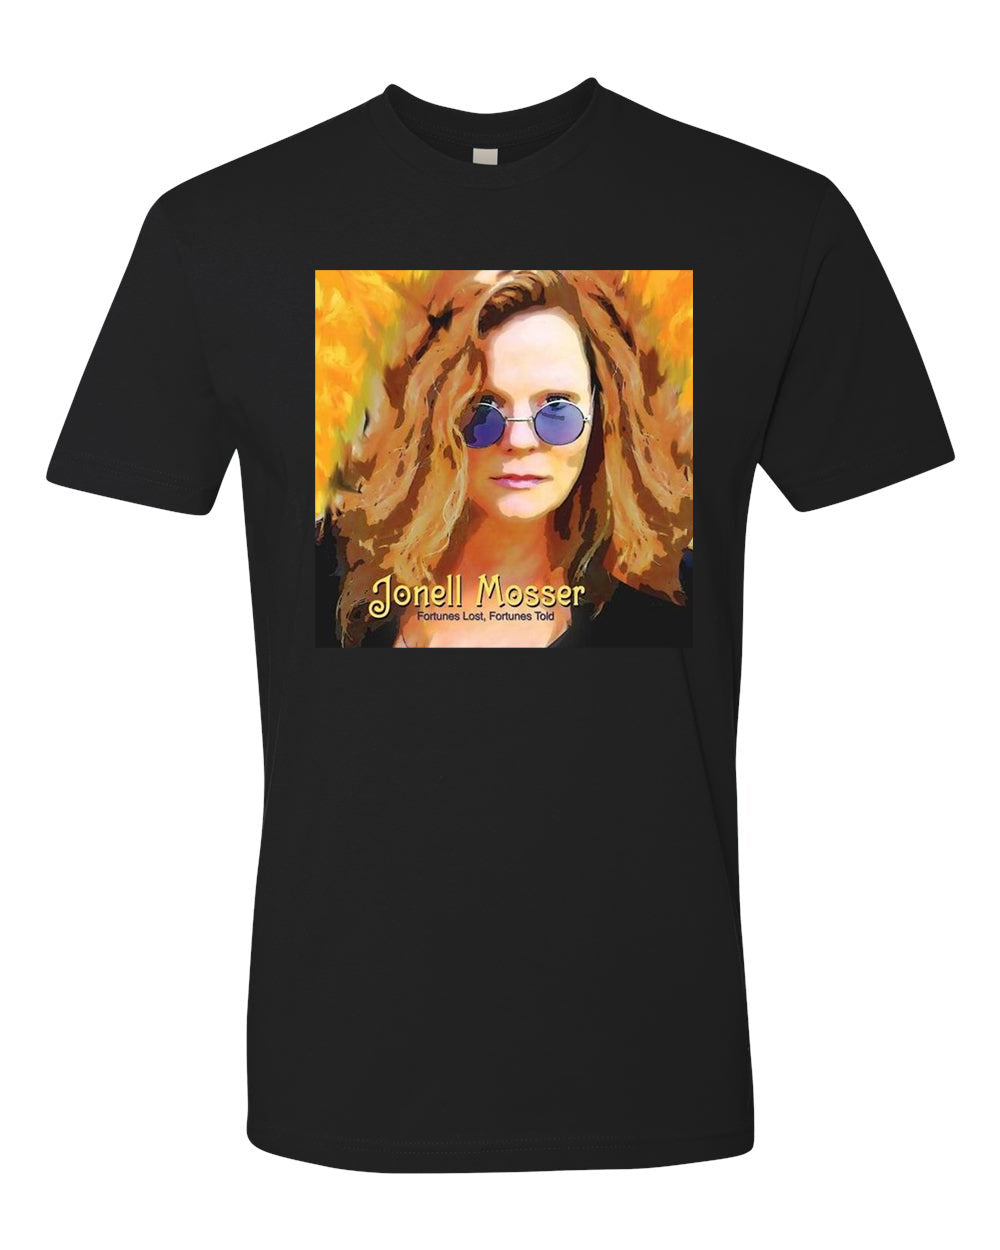 Jonell Mosser Photo T-Shirt